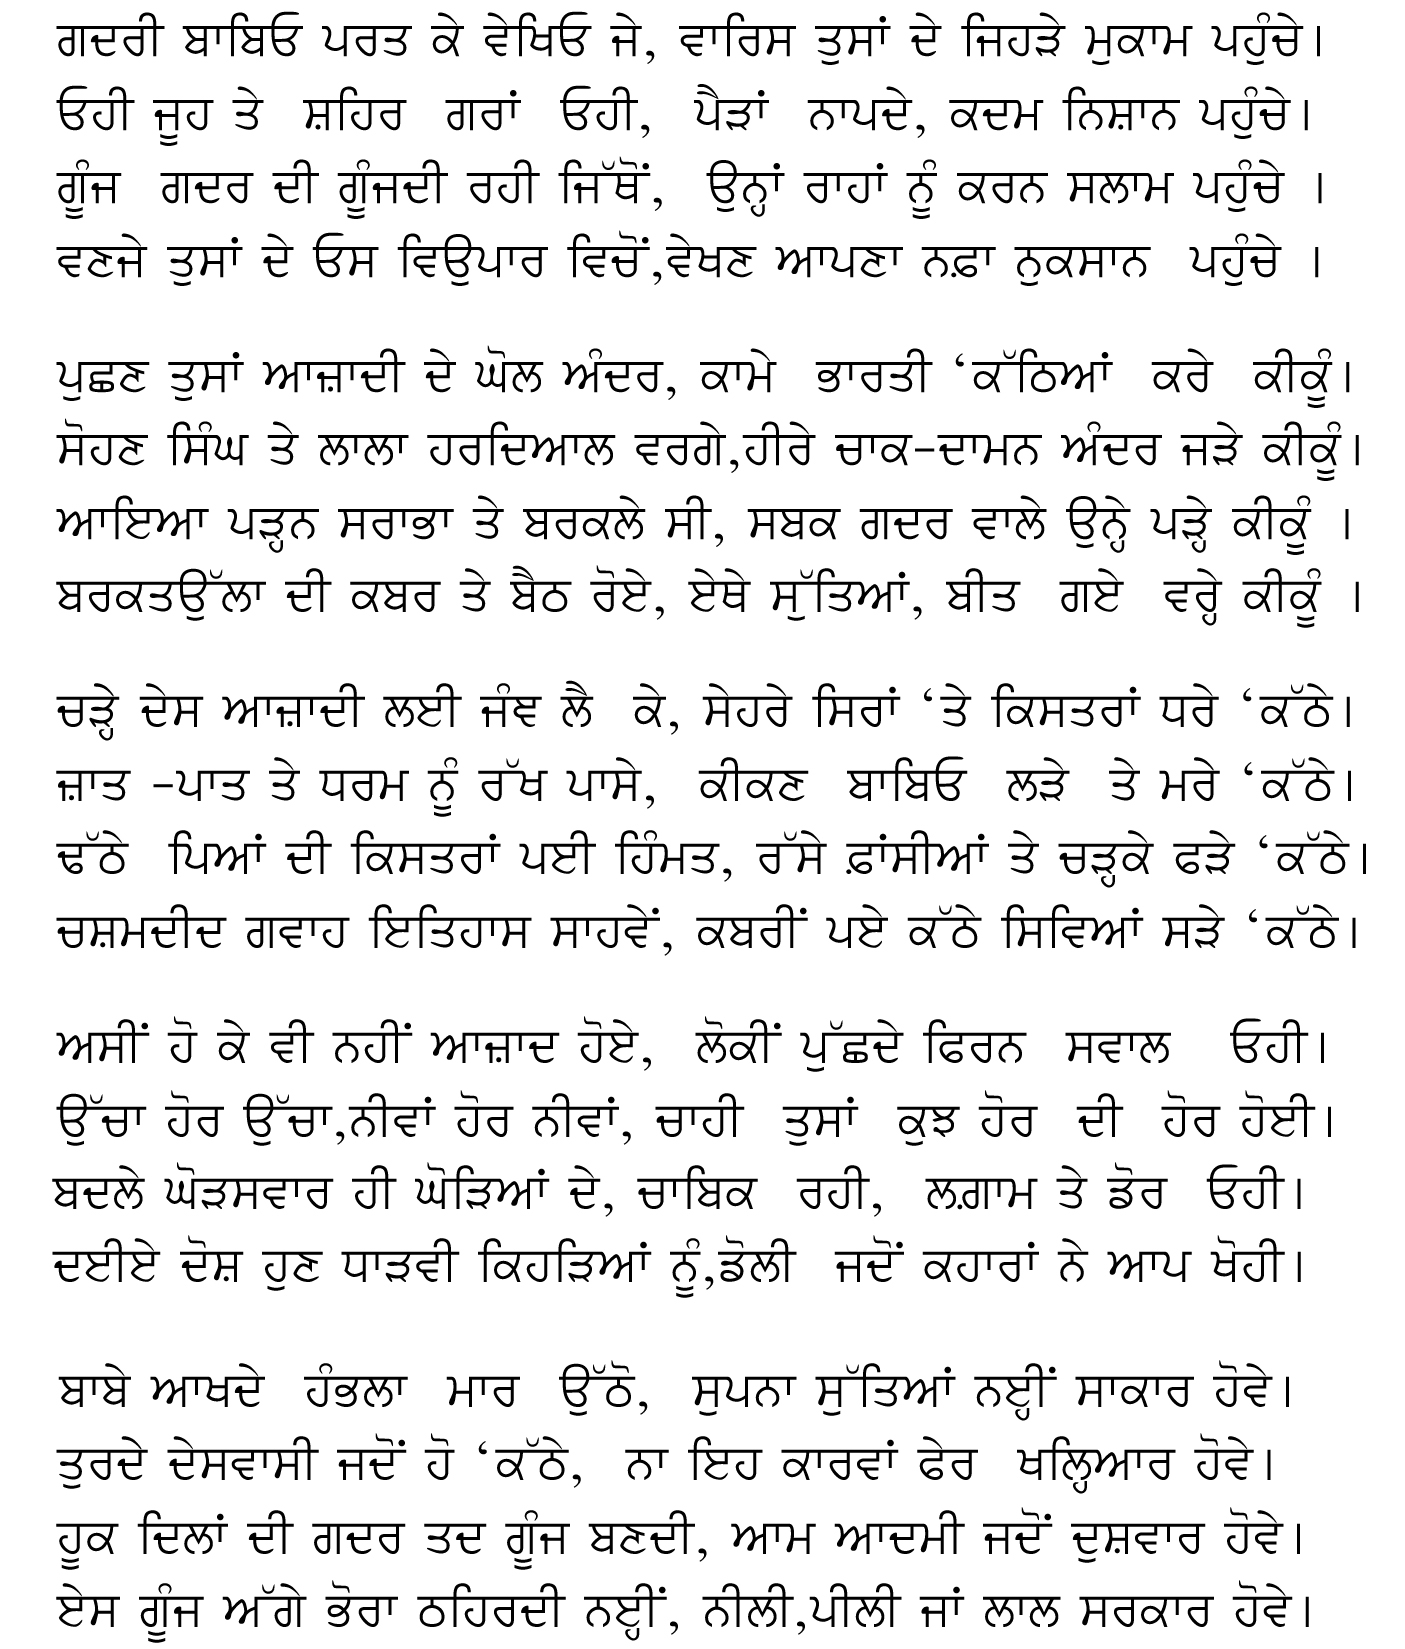 Essay on lohri in punjabi language translation